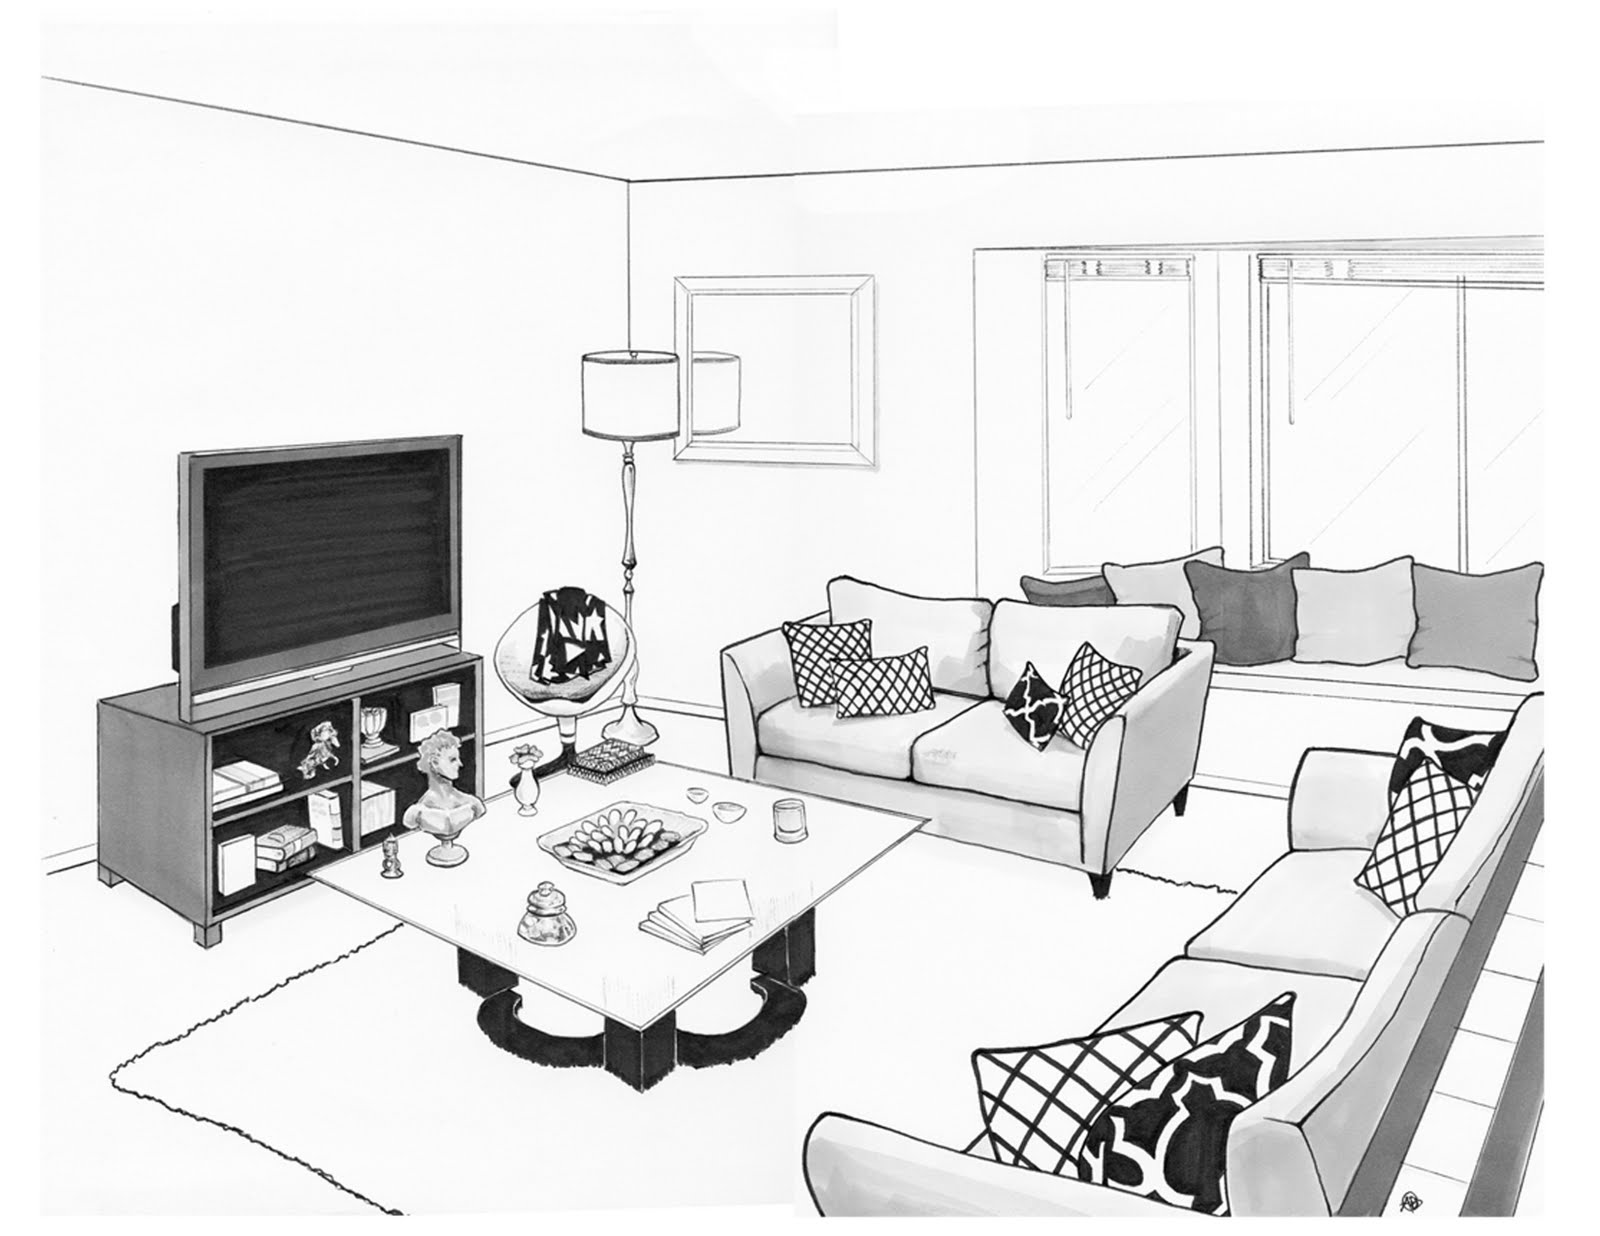 flako render drawing of andres living room